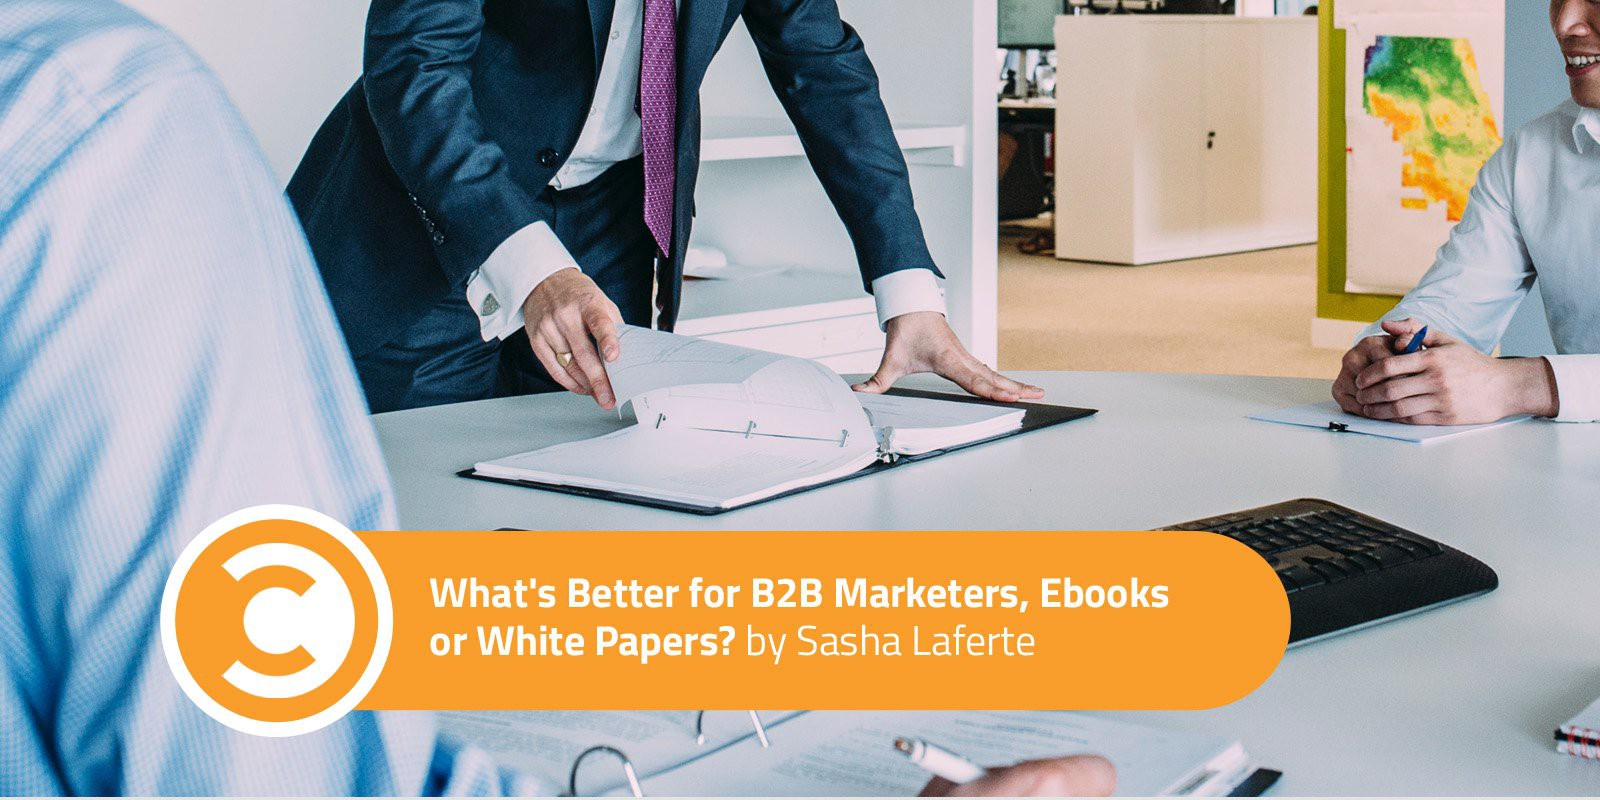 What's Better for B2B Marketers, Ebooks or White Papers